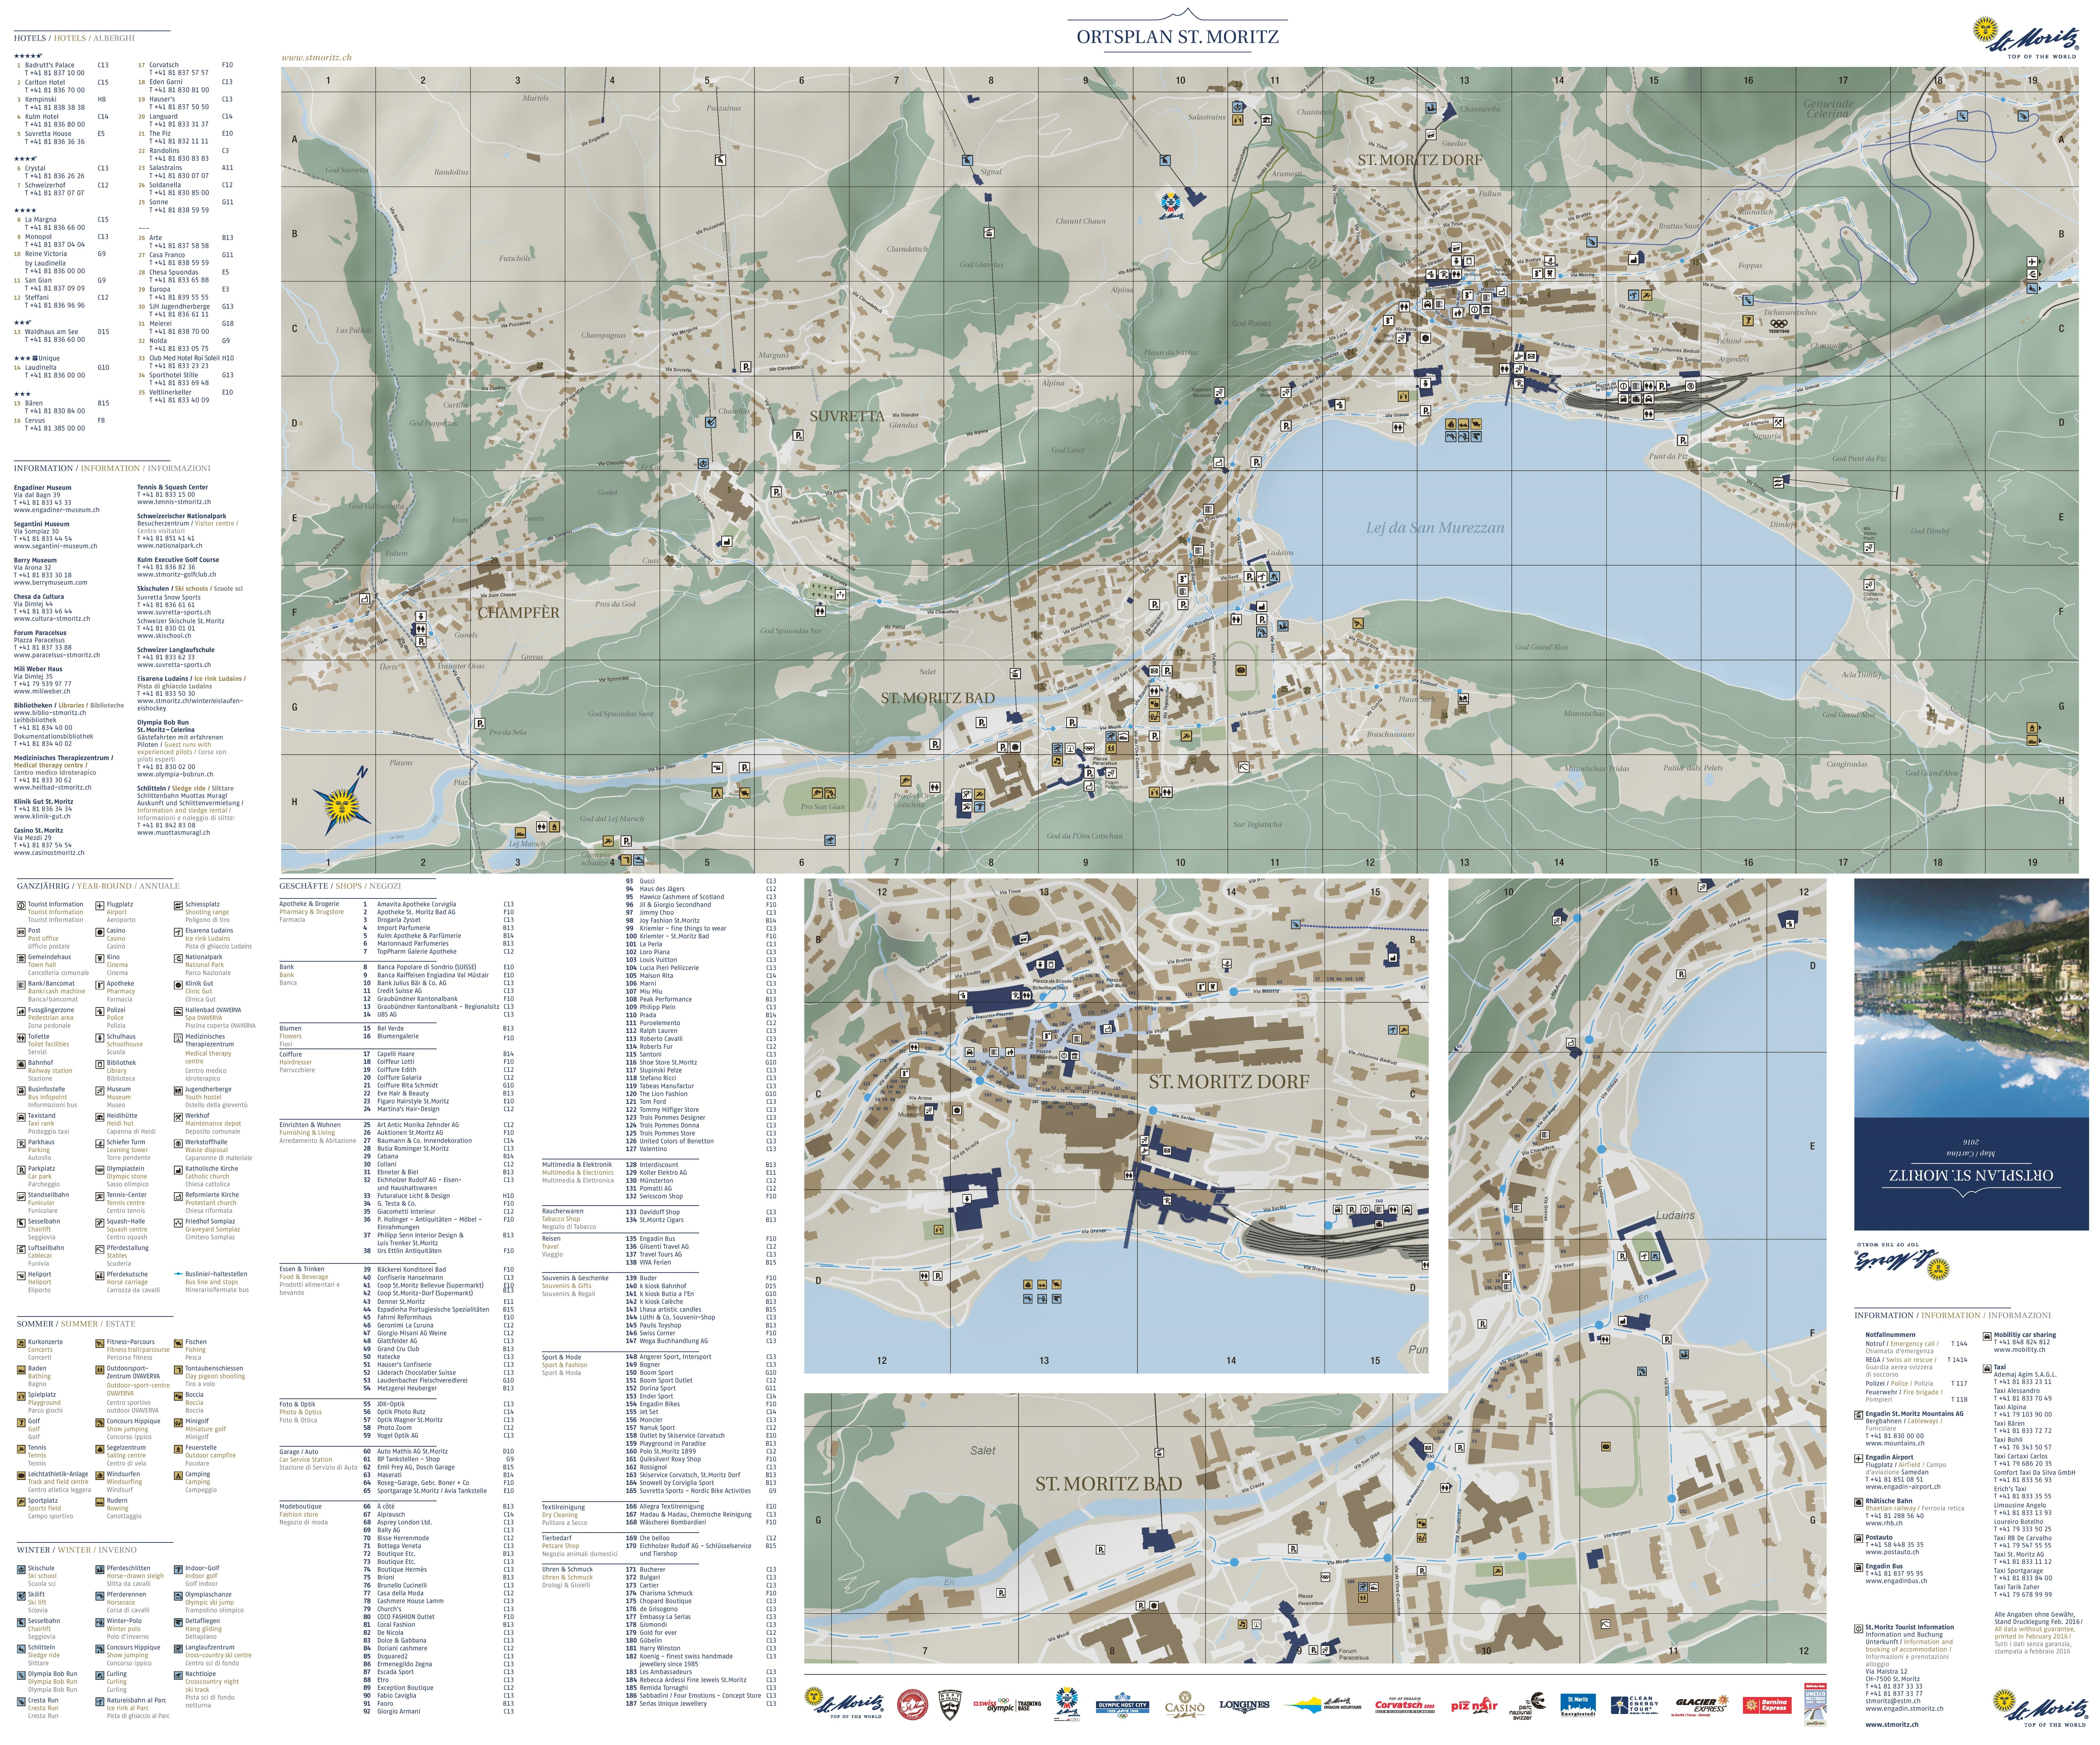 St. Moritz tourist attractions map